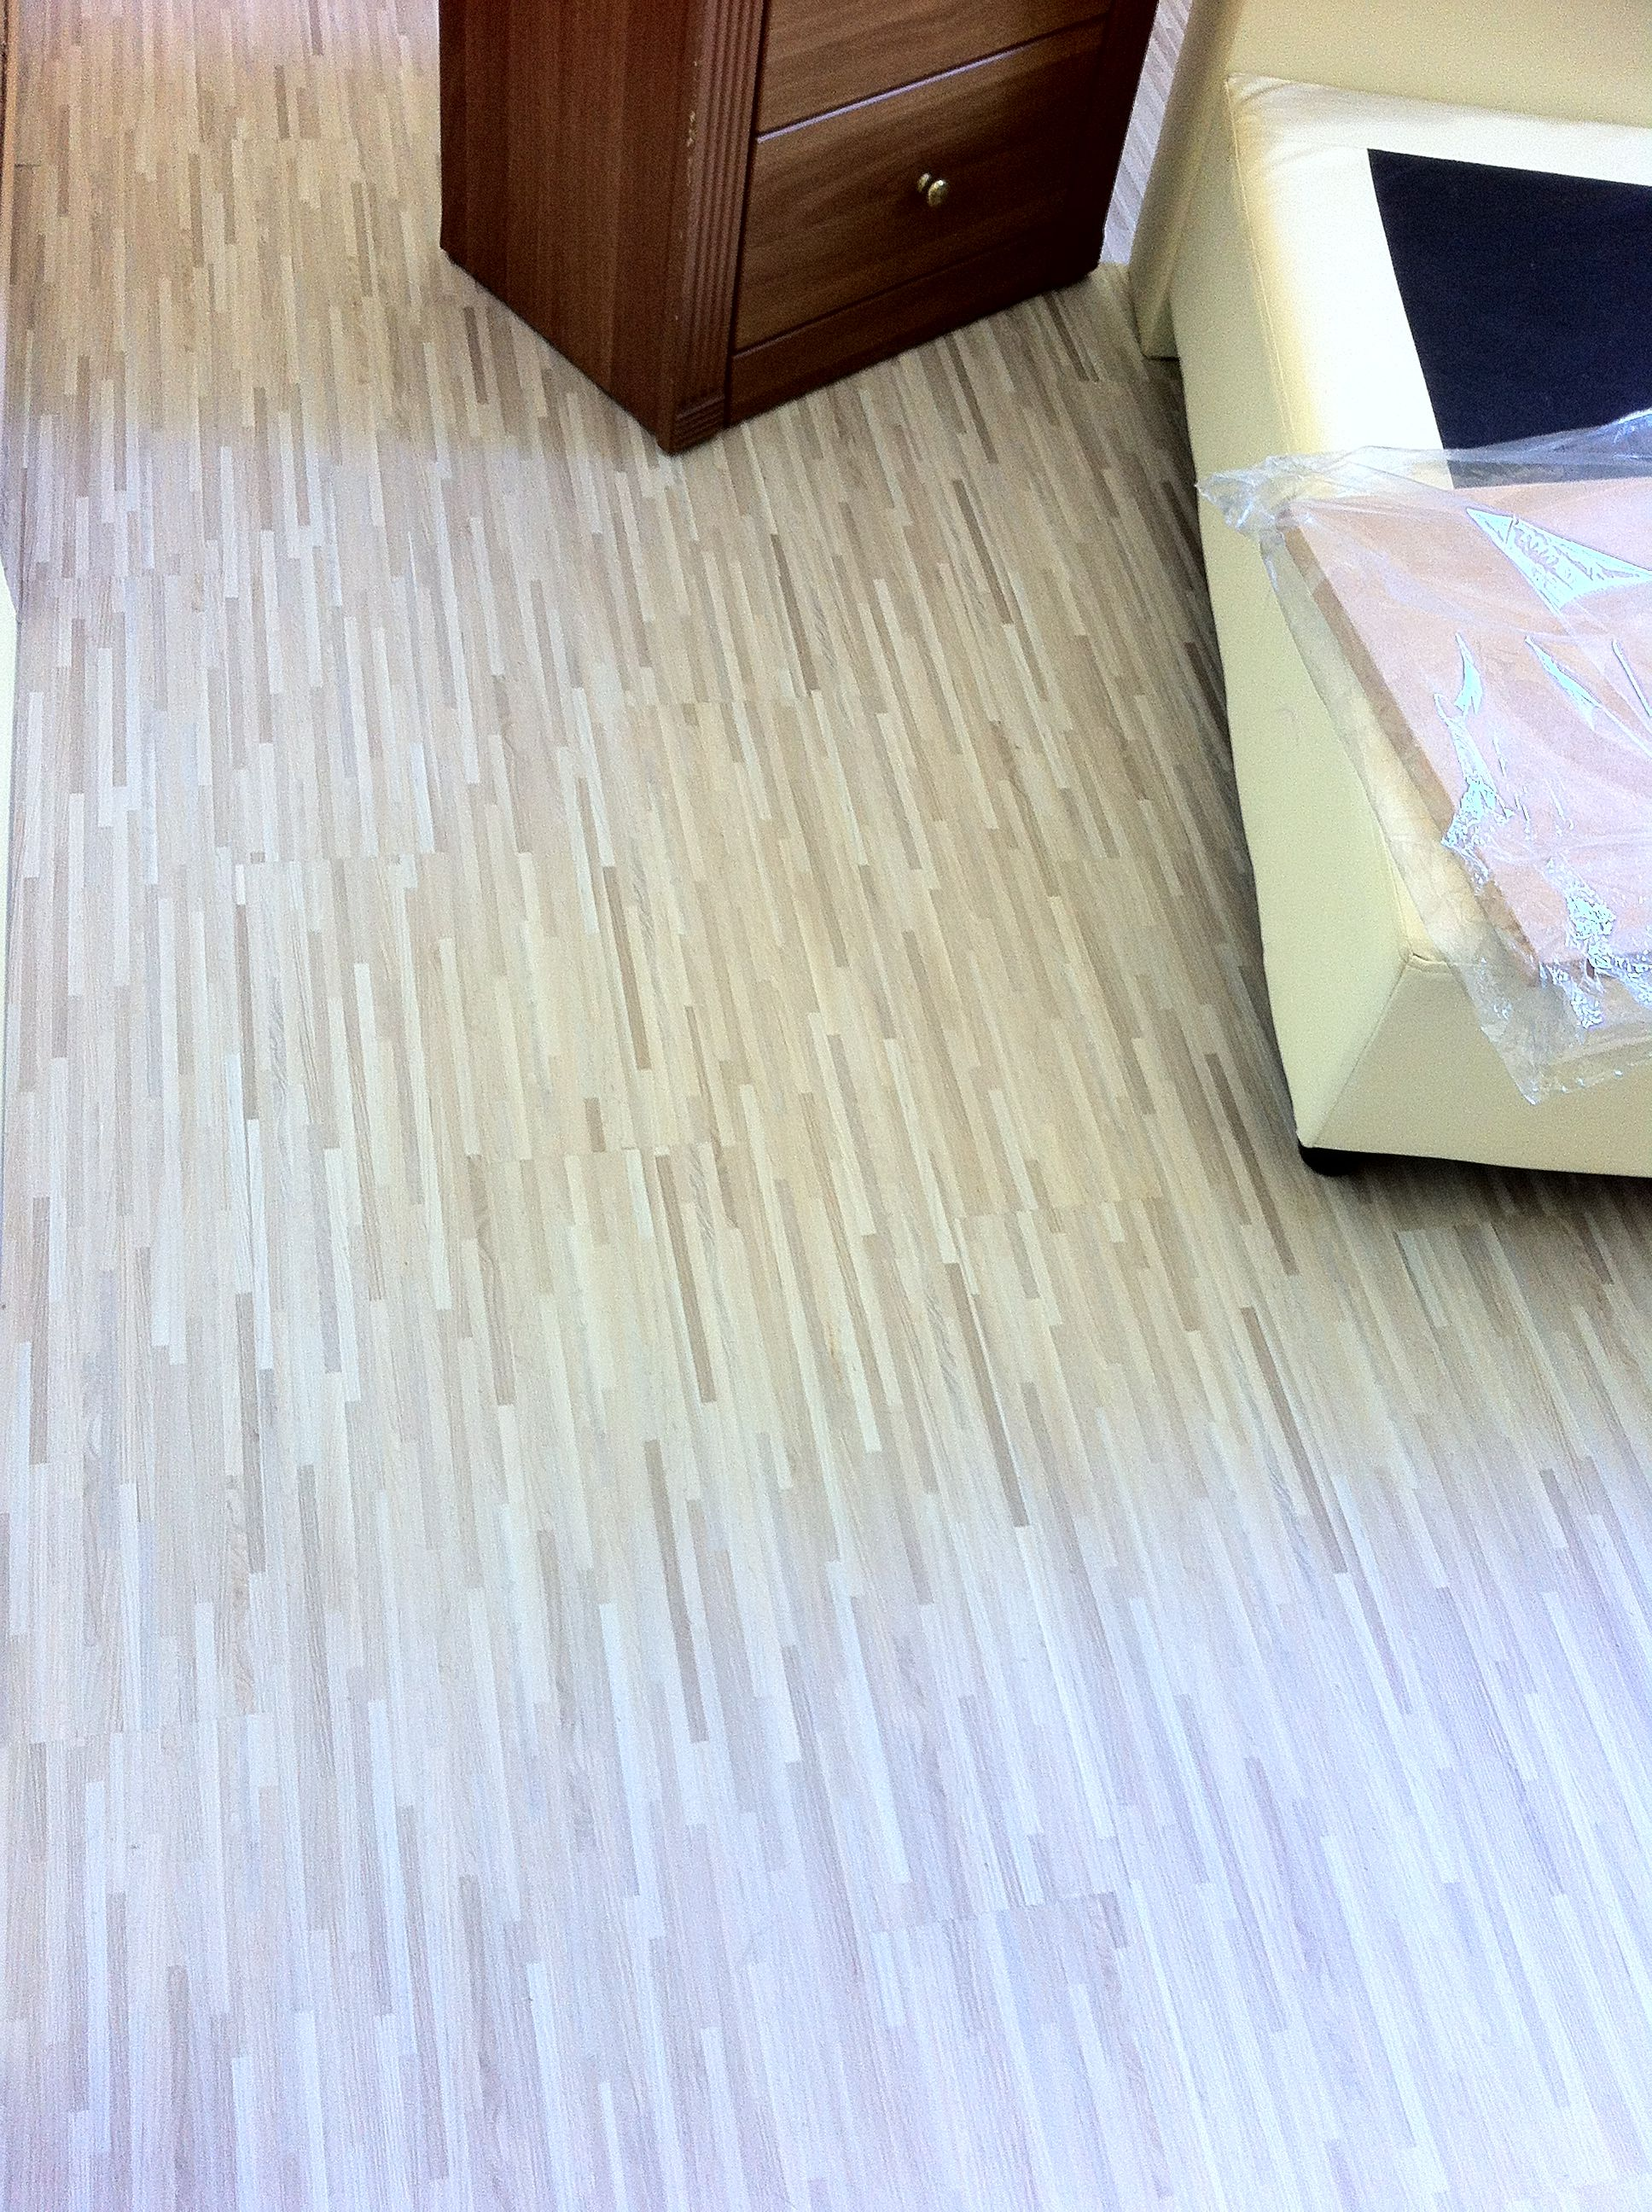 Vinyl Laminated Flooring made of 100% Recycled PVC